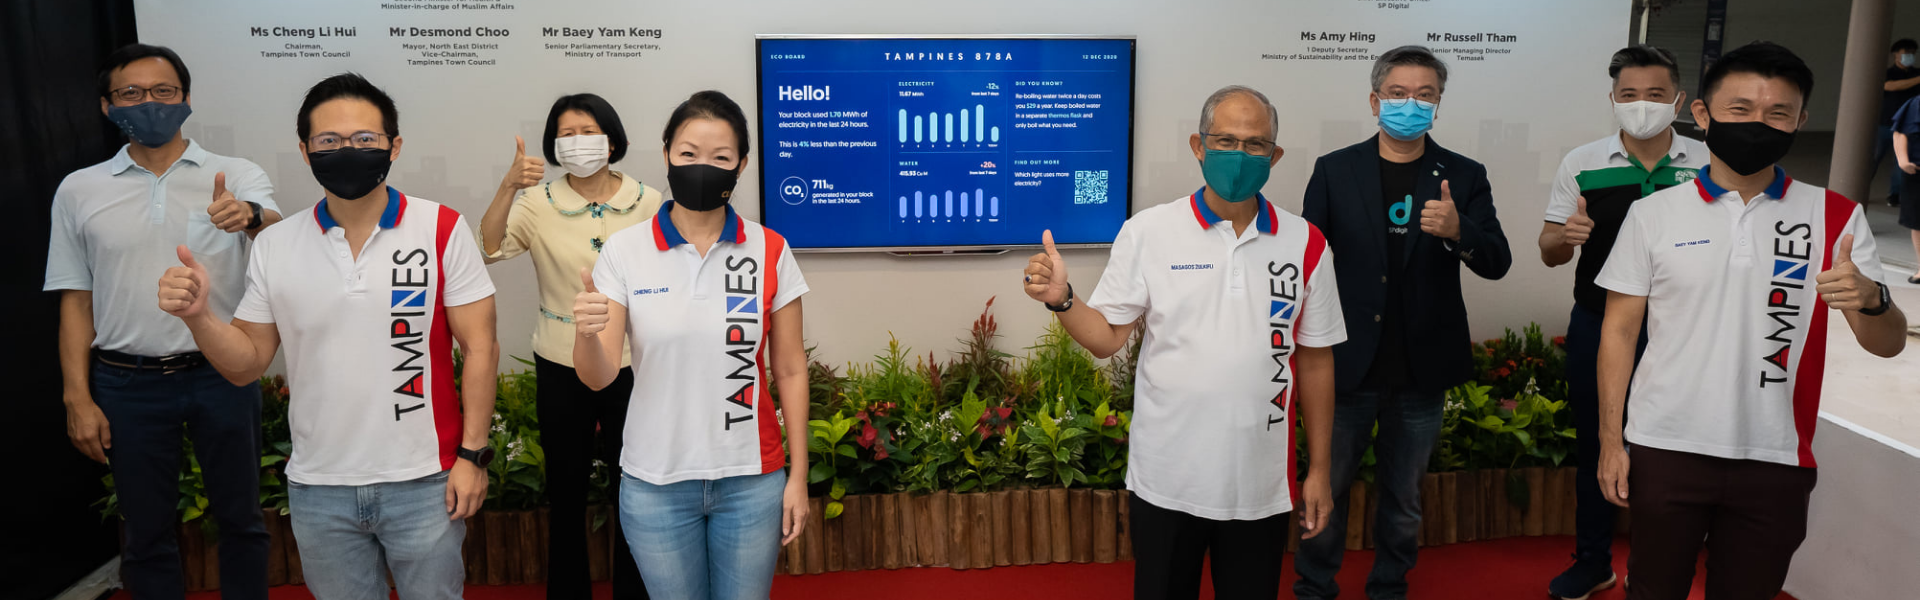 Eco Boards Show Residents' Utilities Consumption in Real-Time